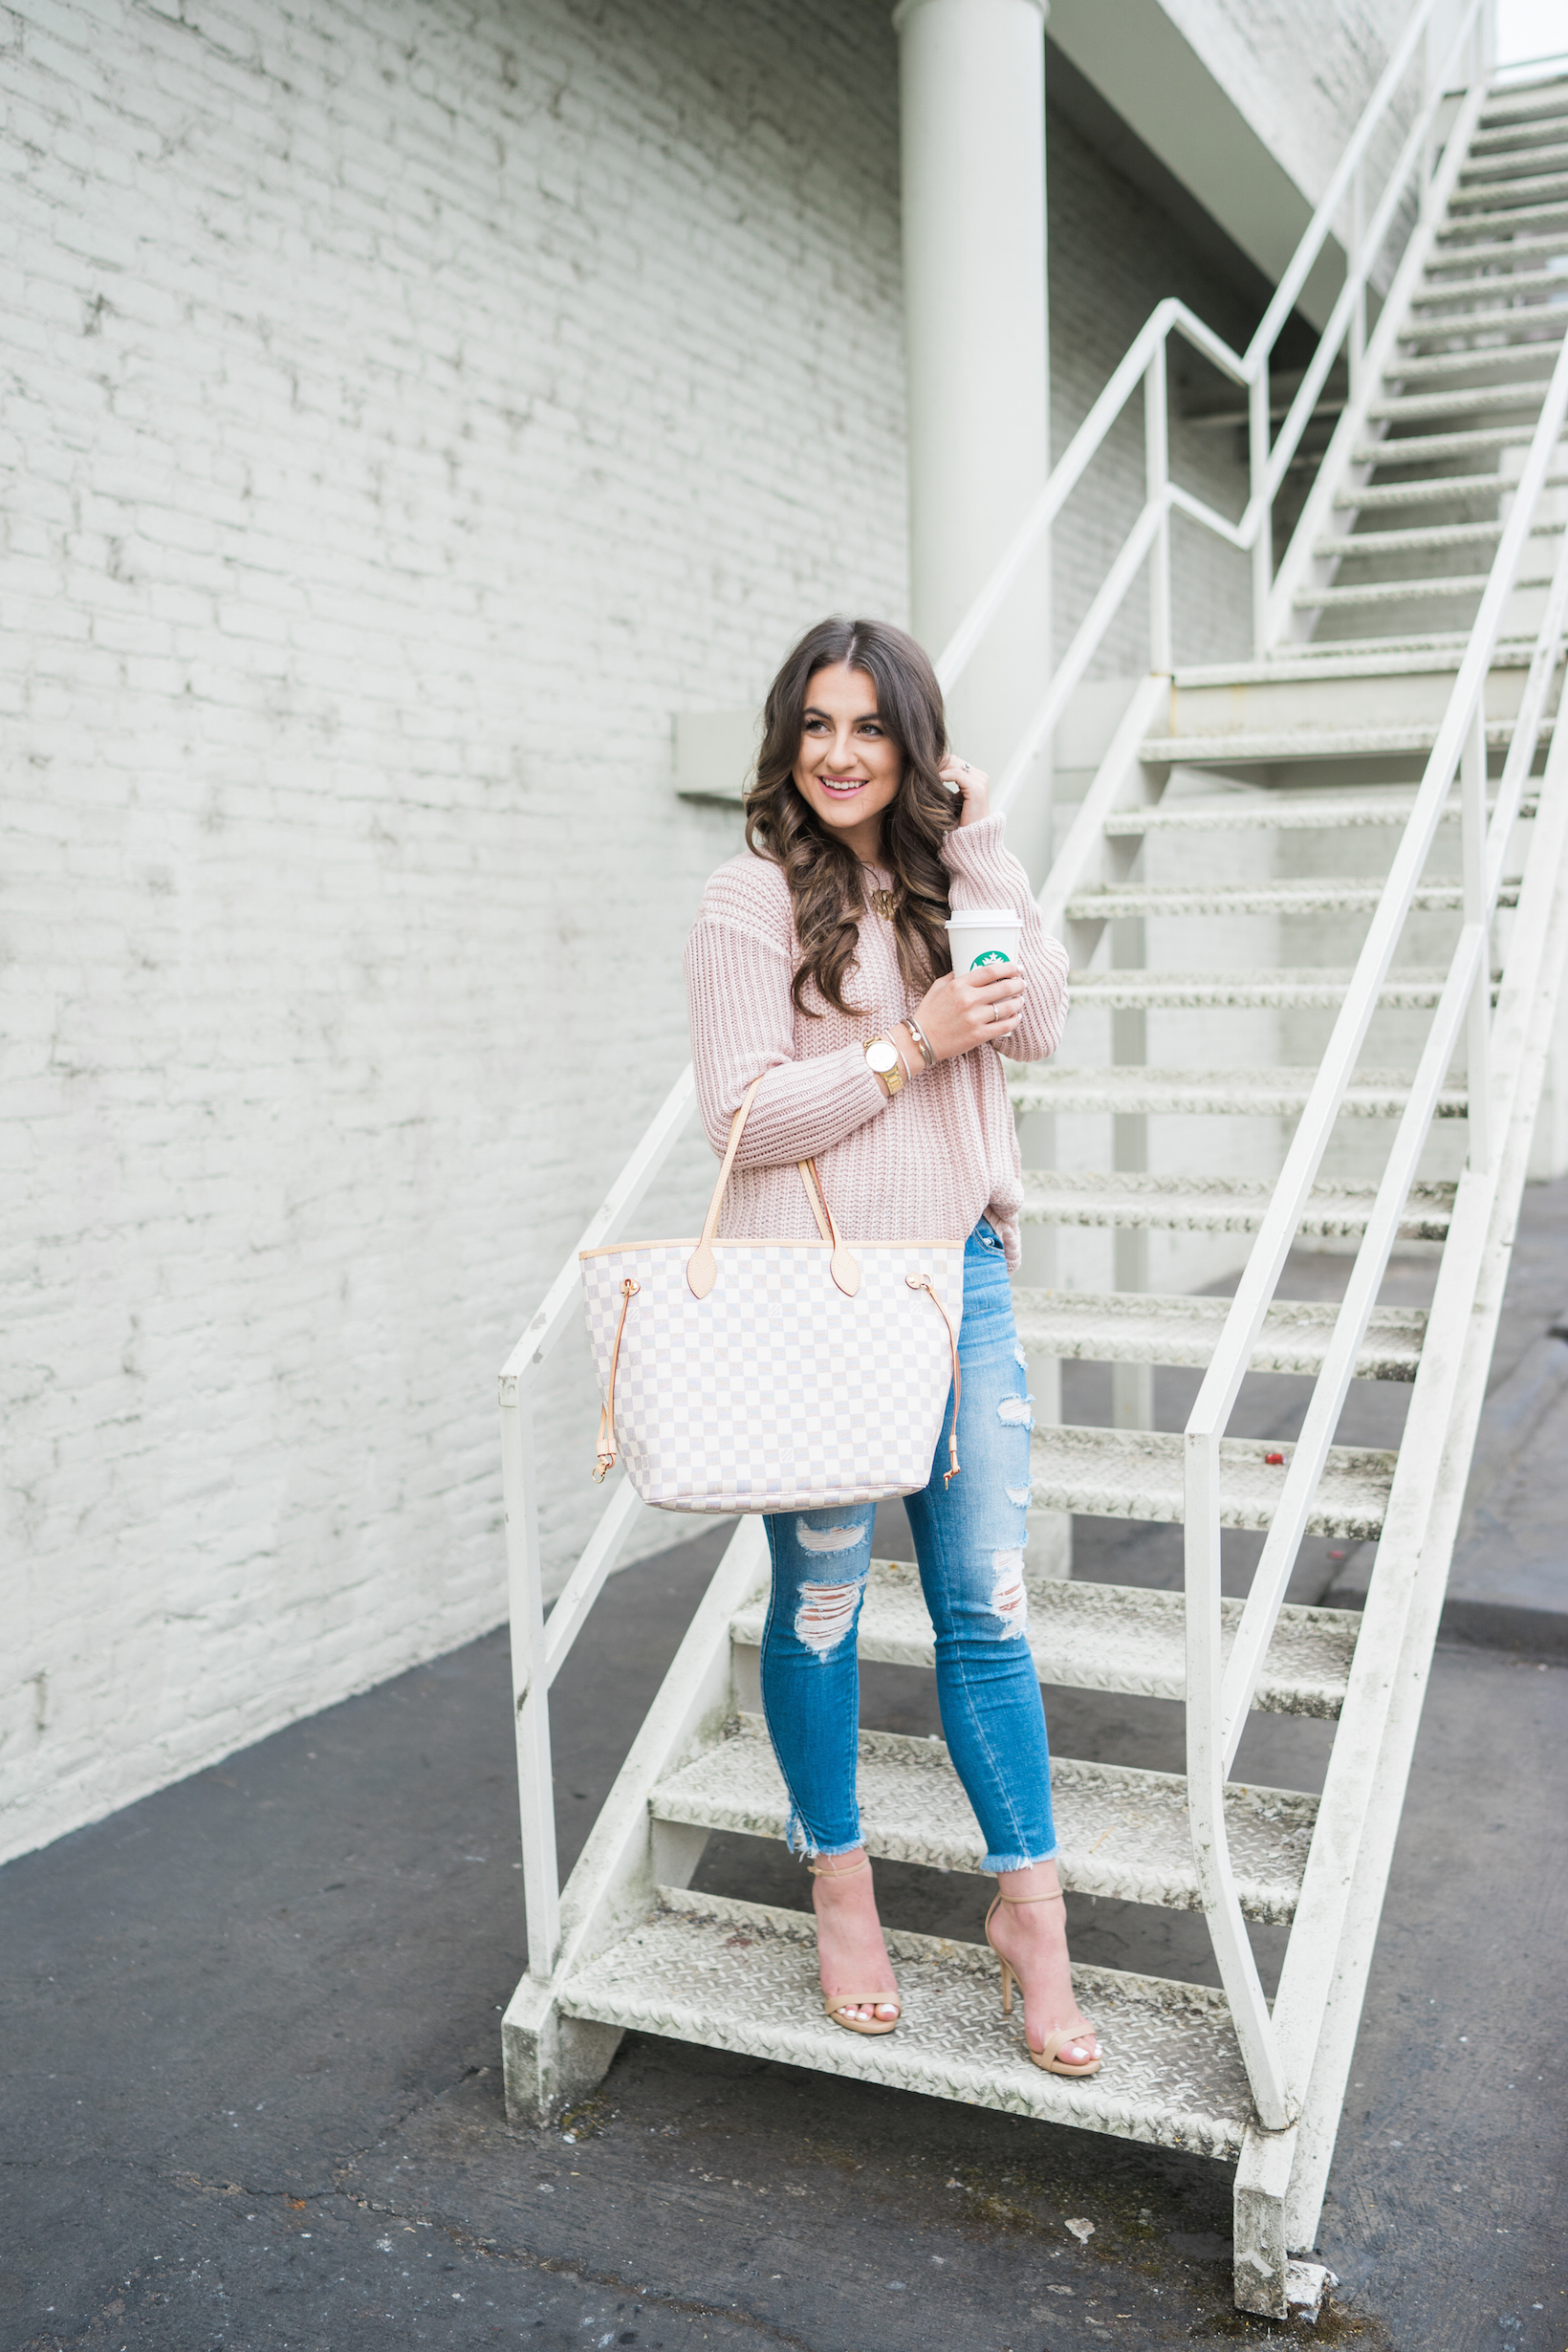 Fall Fashion Inspiration by Portland fashion blogger Topknots and Pearls